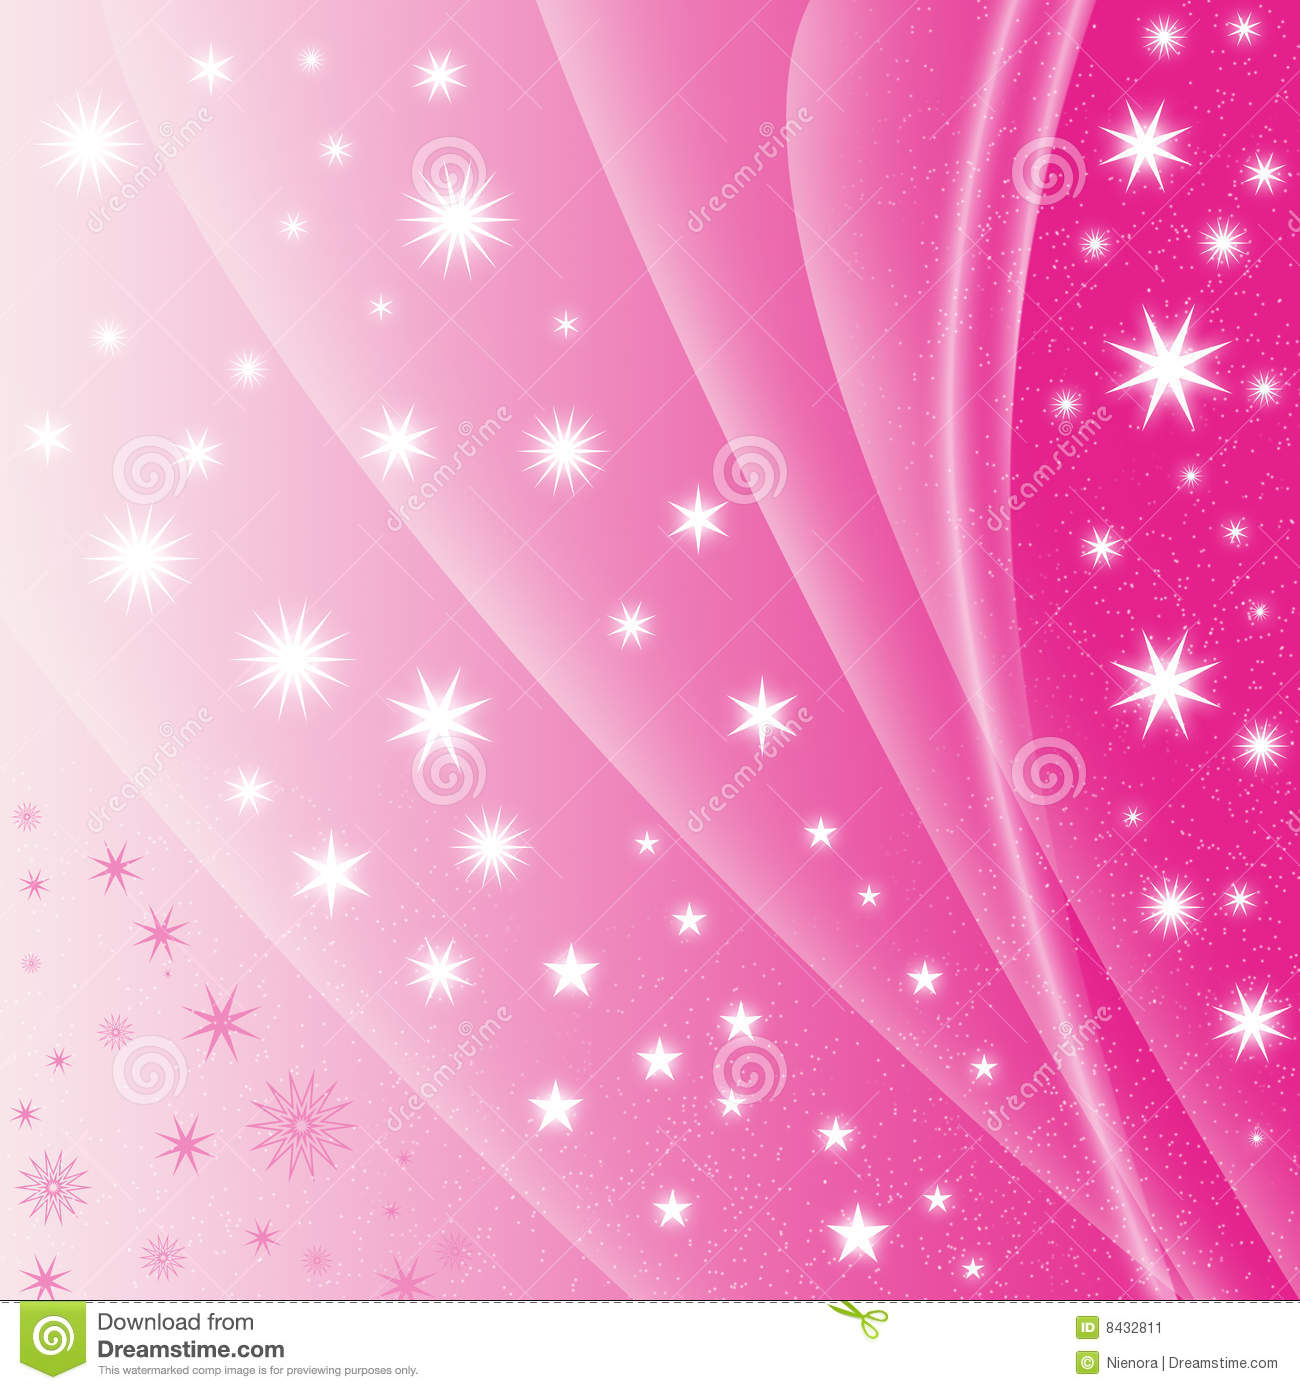 Purple Falling Circles Wallpaper Abstract Pink Star Background Stock Image Image 8432811